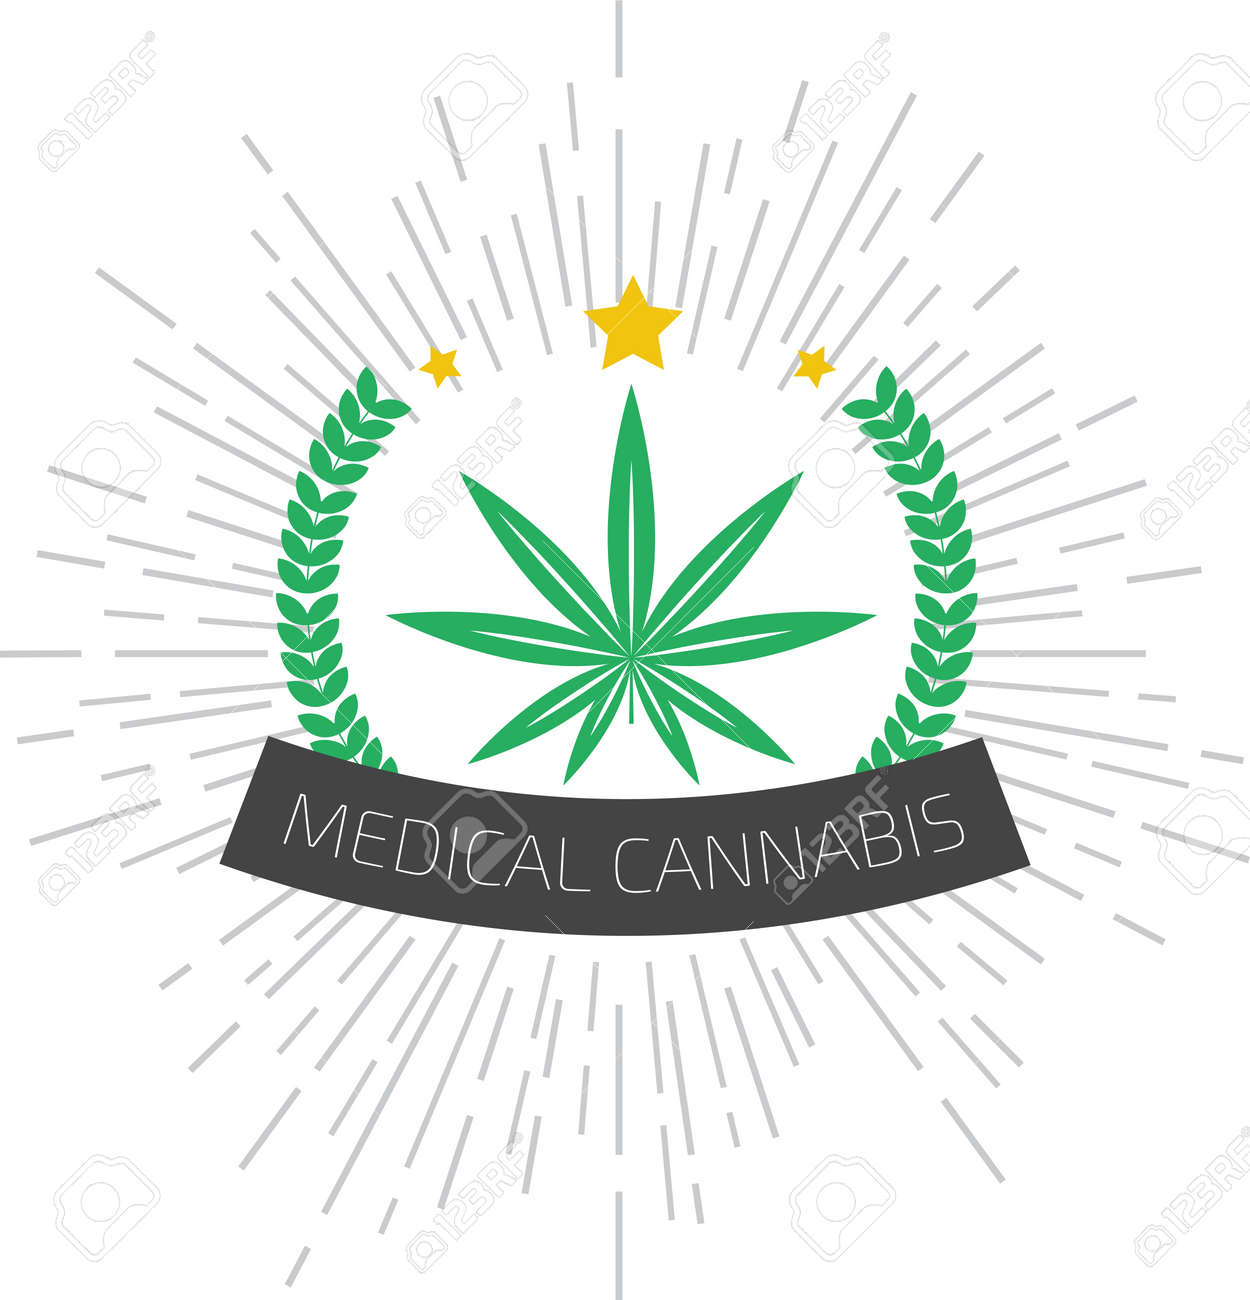 medical manufacturing cliparts stock vector and royalty medical manufacturing medical cannabis logo medical marijuana logo medical marijuana label illustration